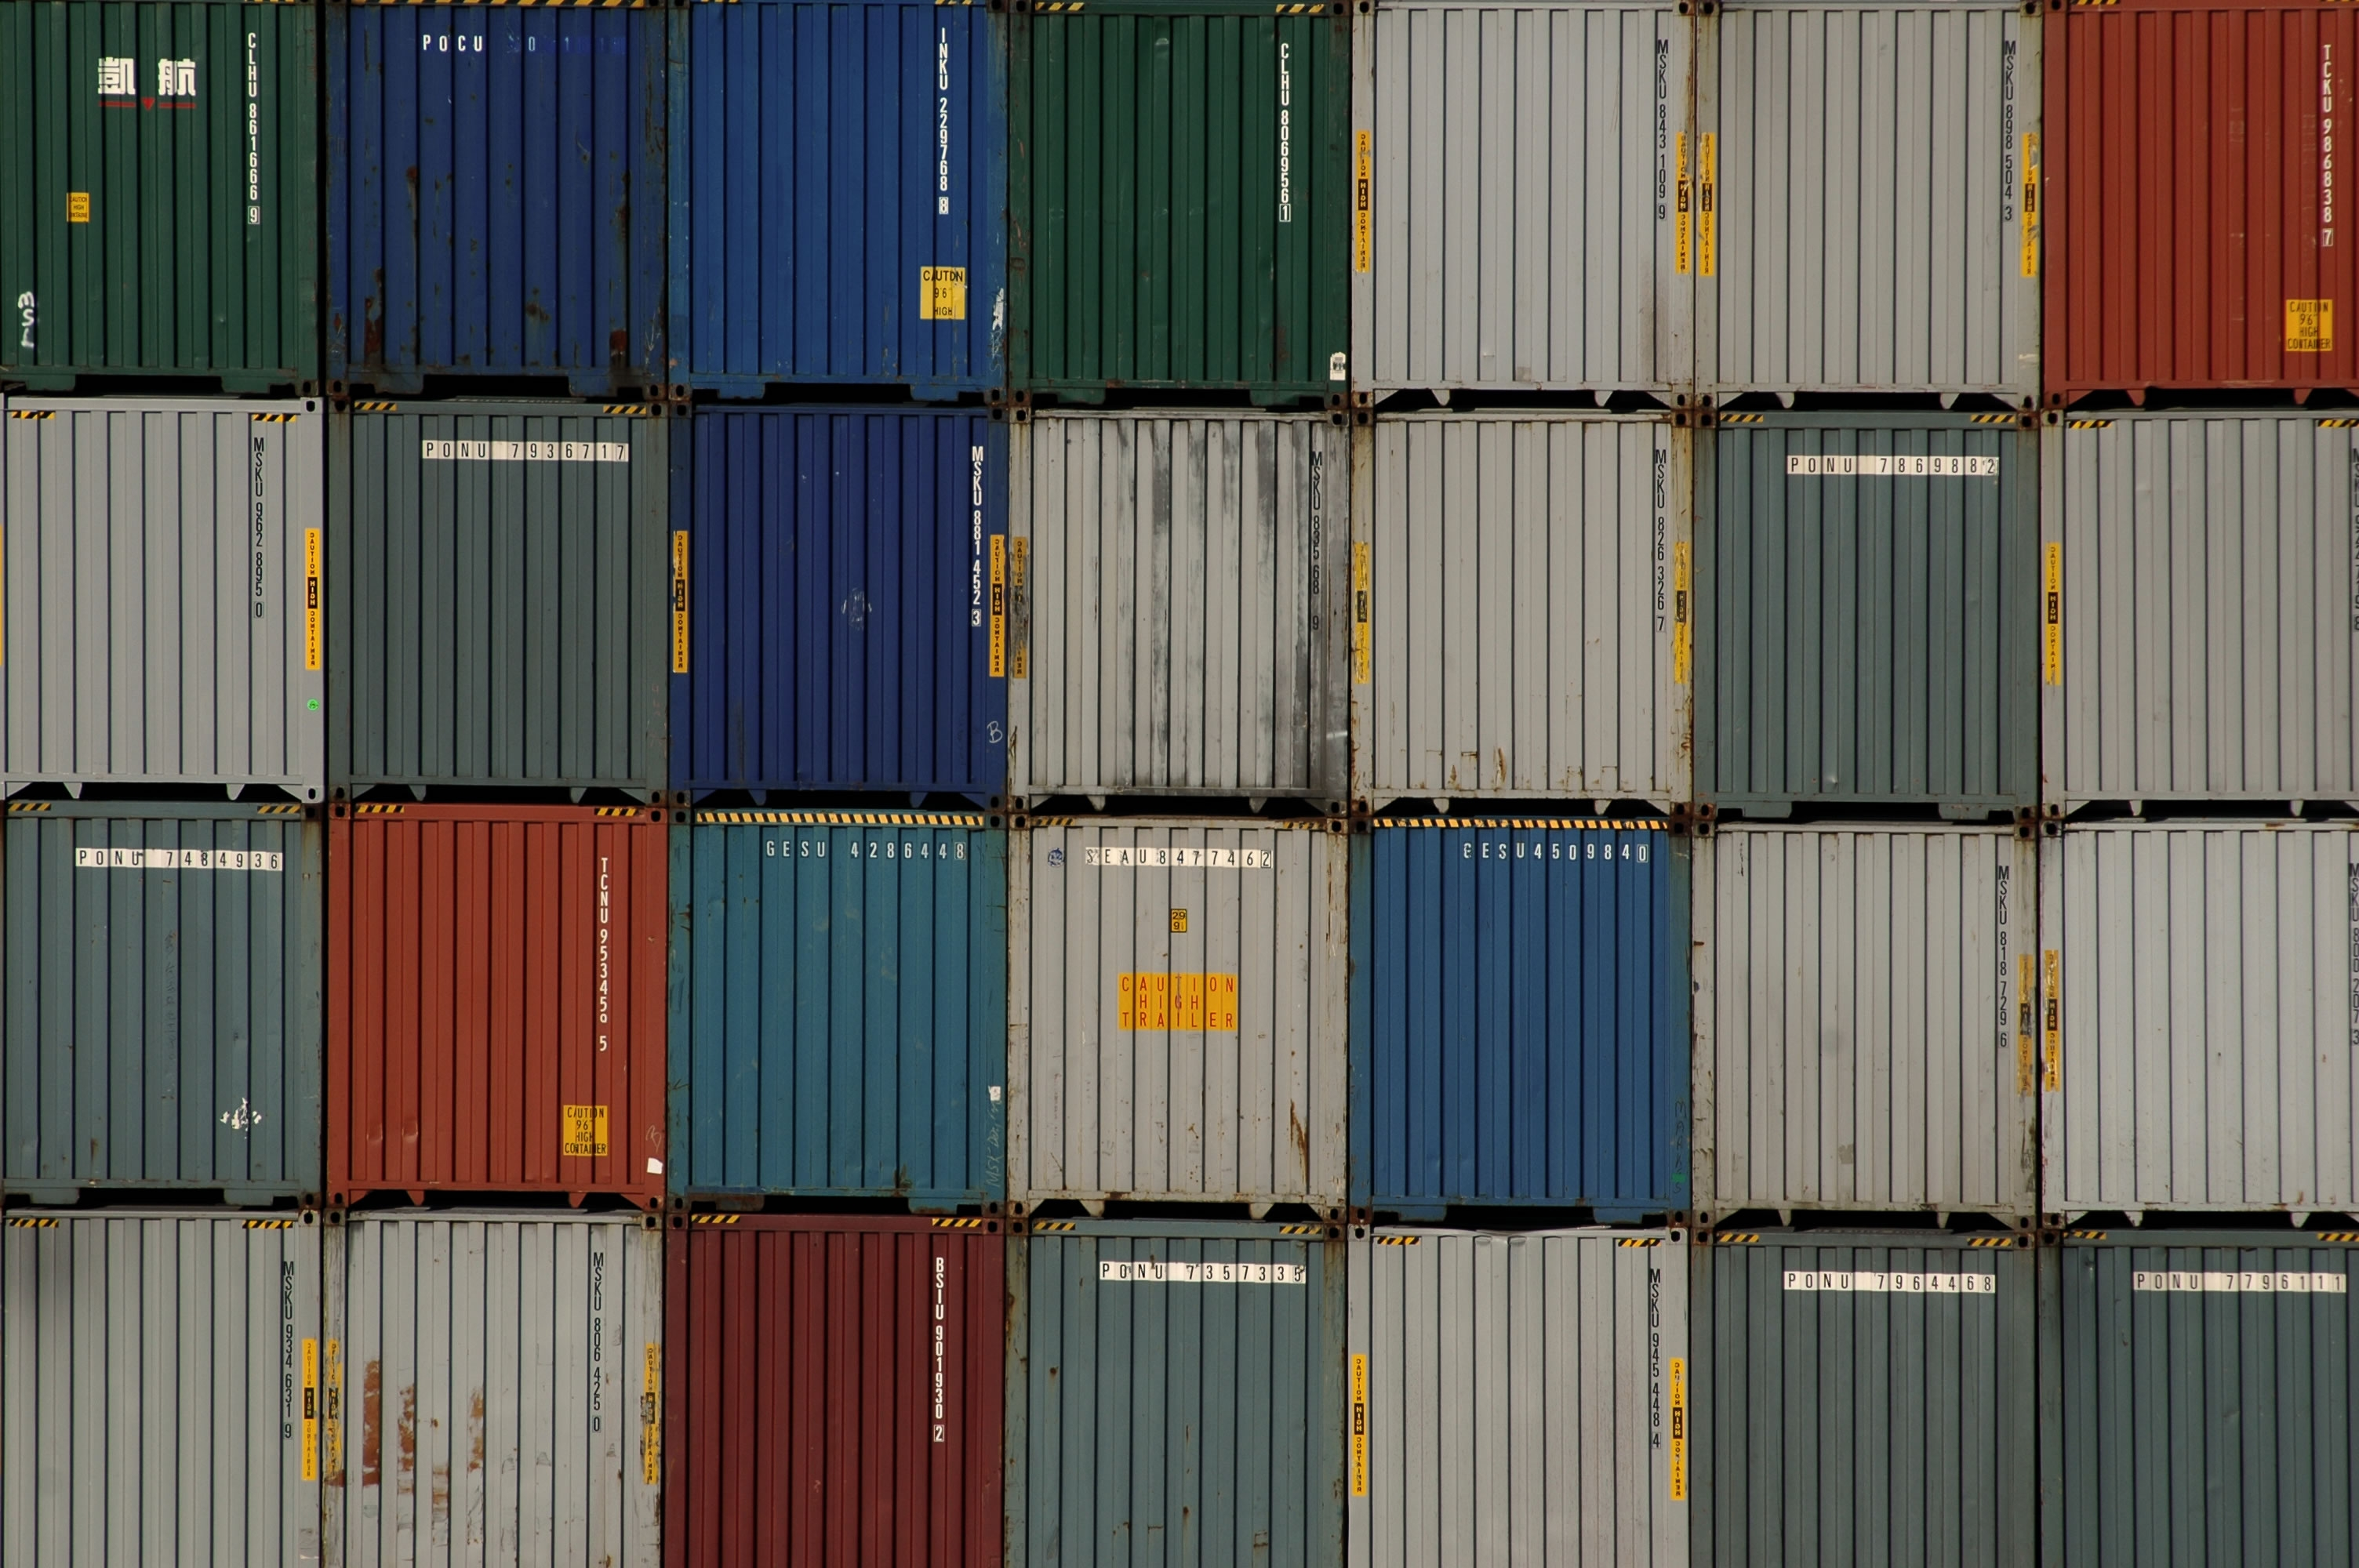 Containers Photoshop Contest (16516), Pictures Page 1 - Pxleyes.com